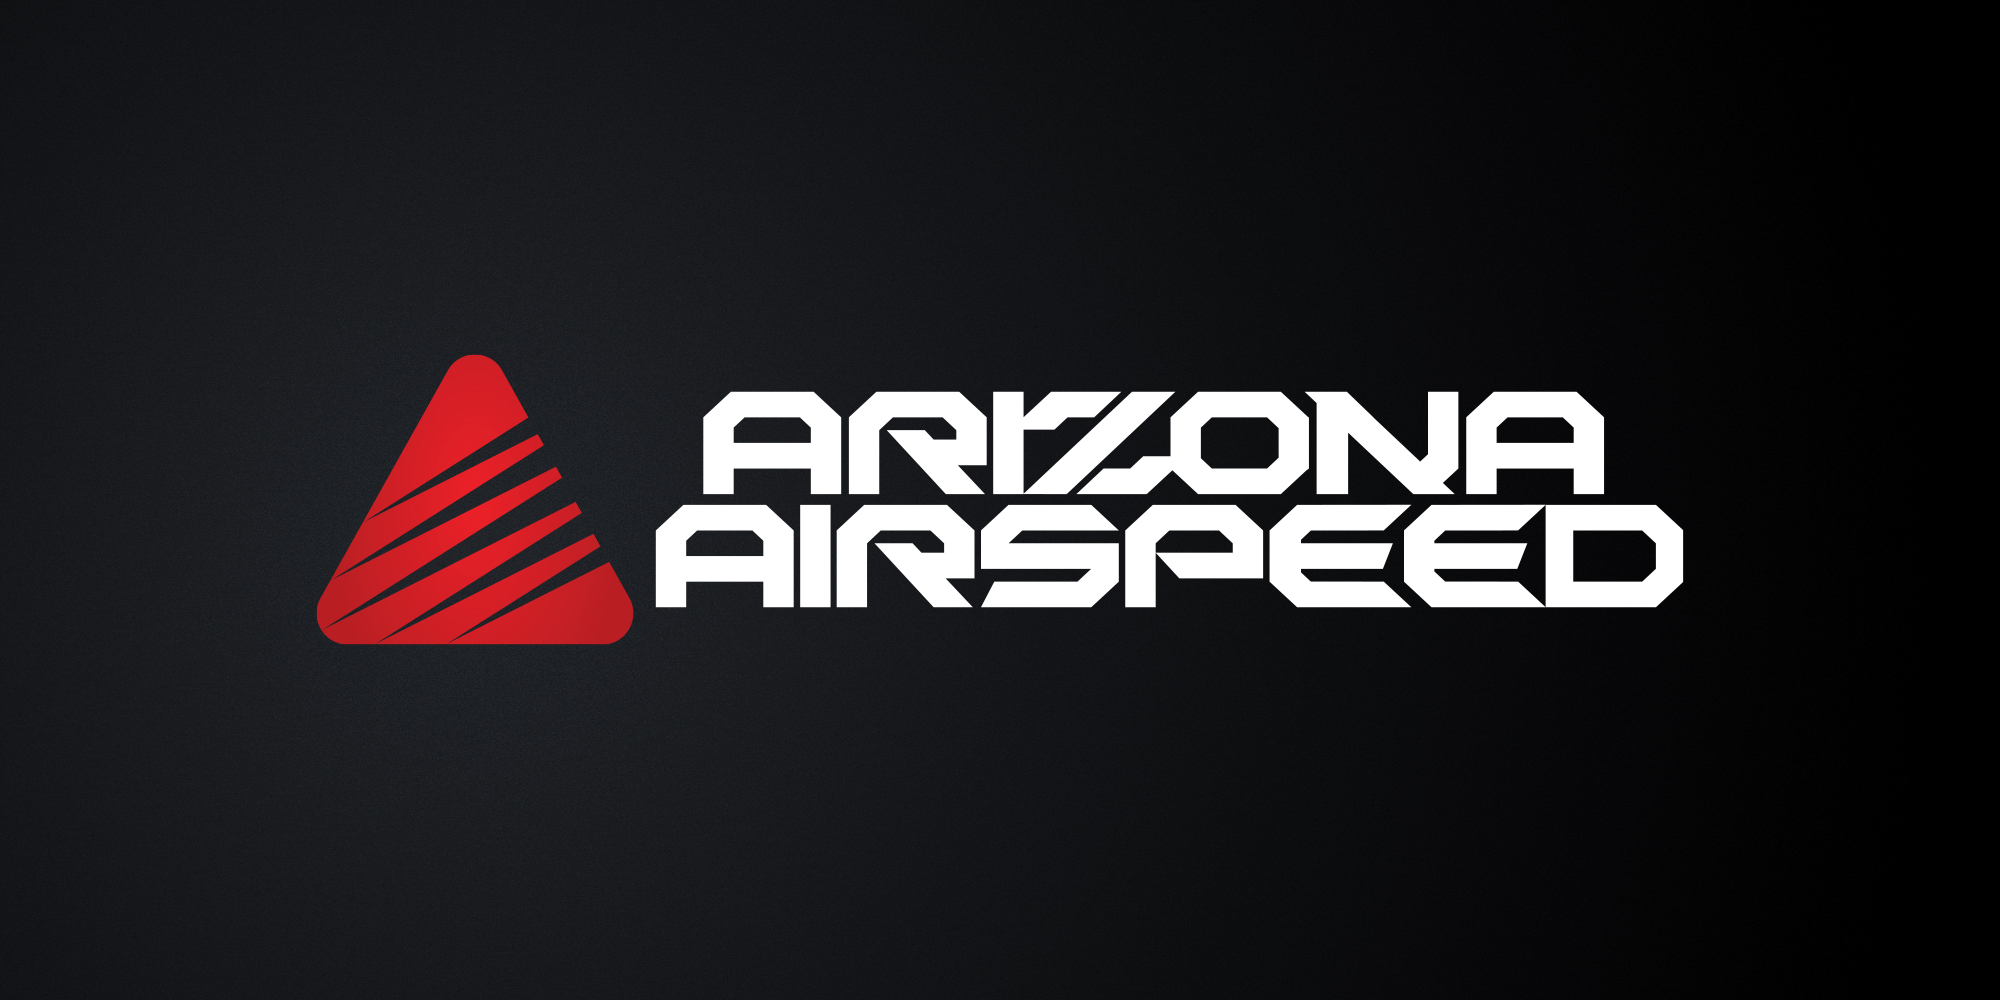 ARIZONAAIRSPEED_logotype